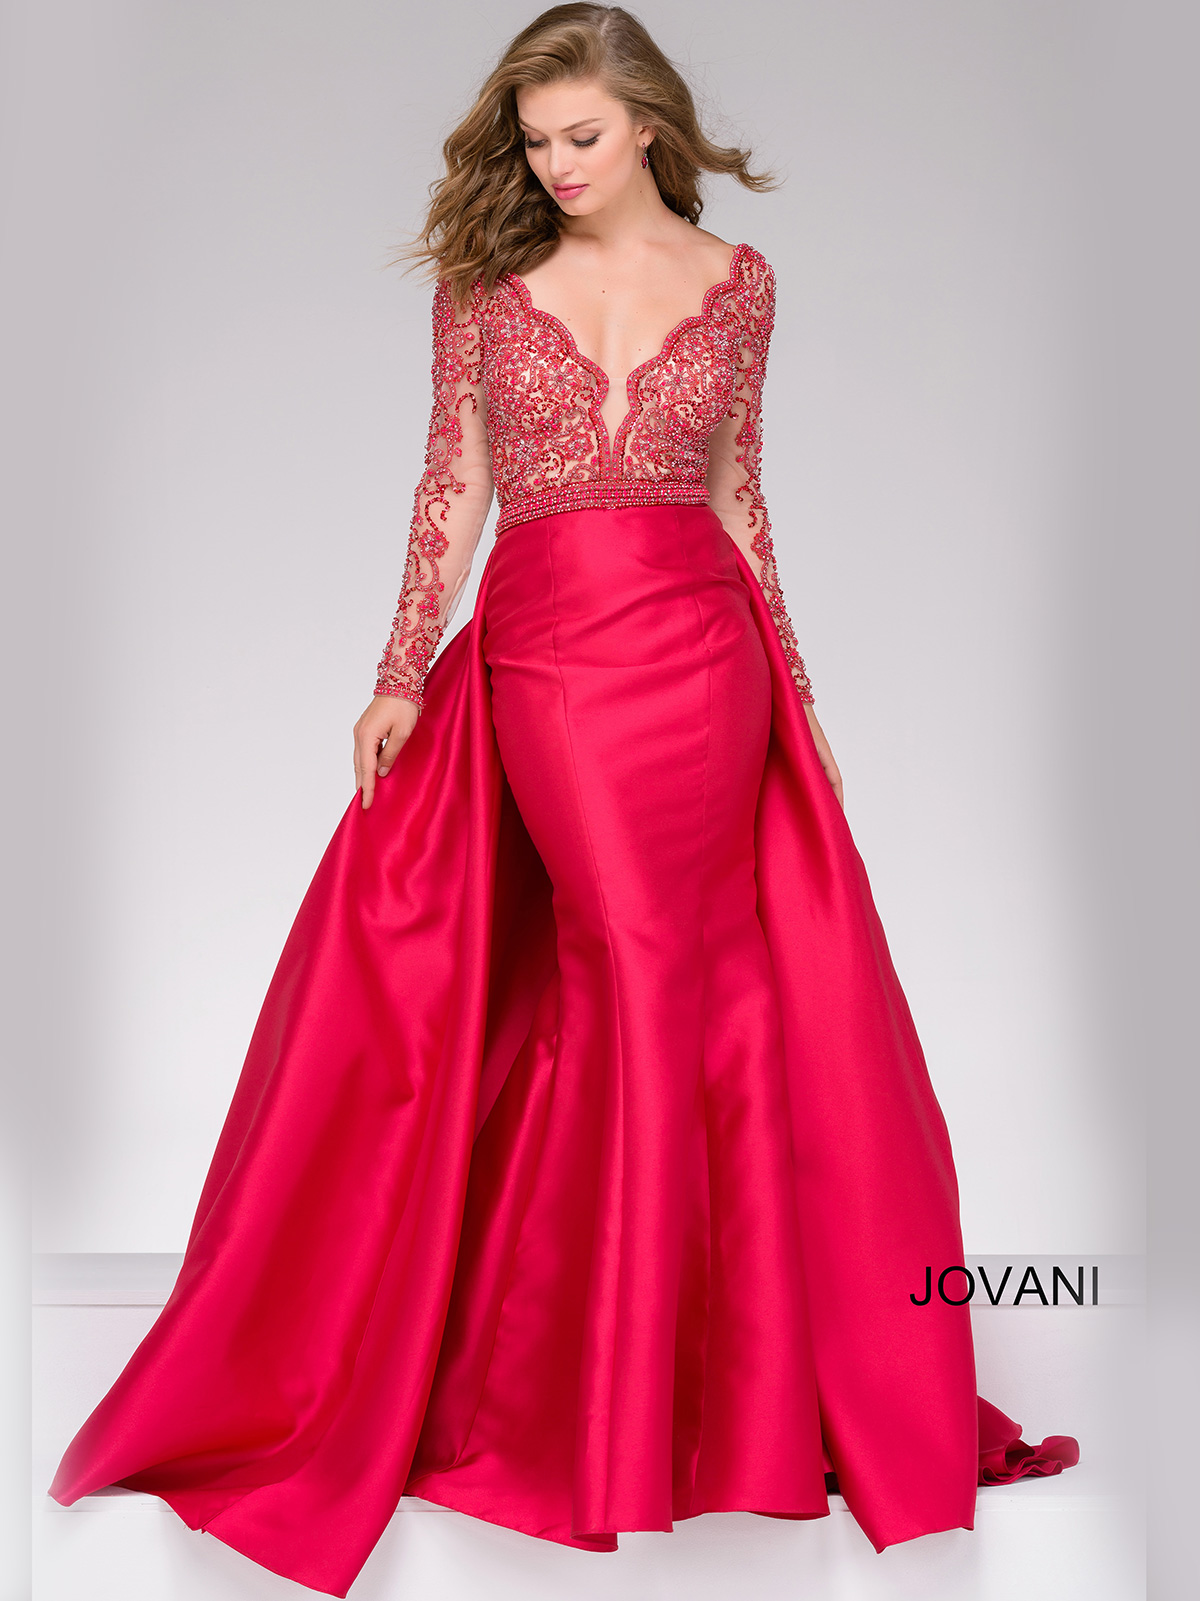 Buy jovani prom dresses